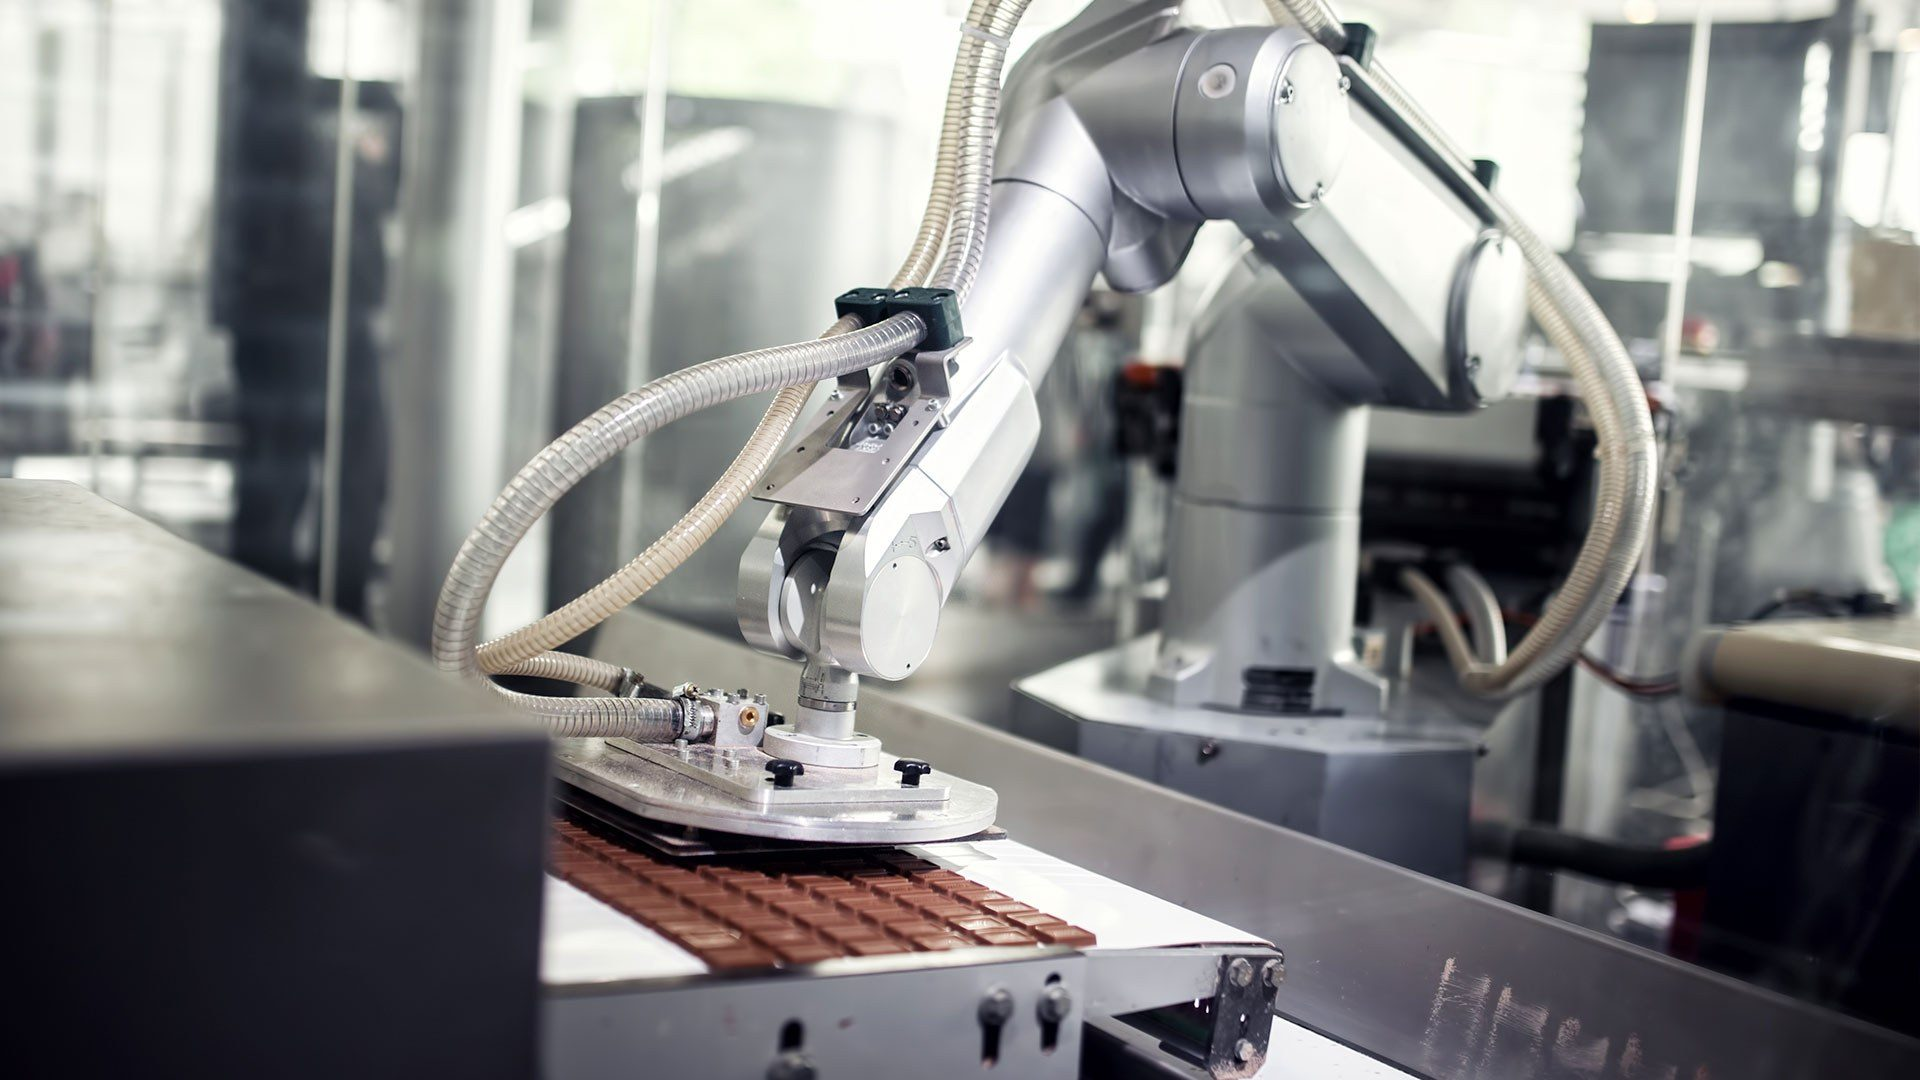 A photo of automated chocolate production with a robot arm